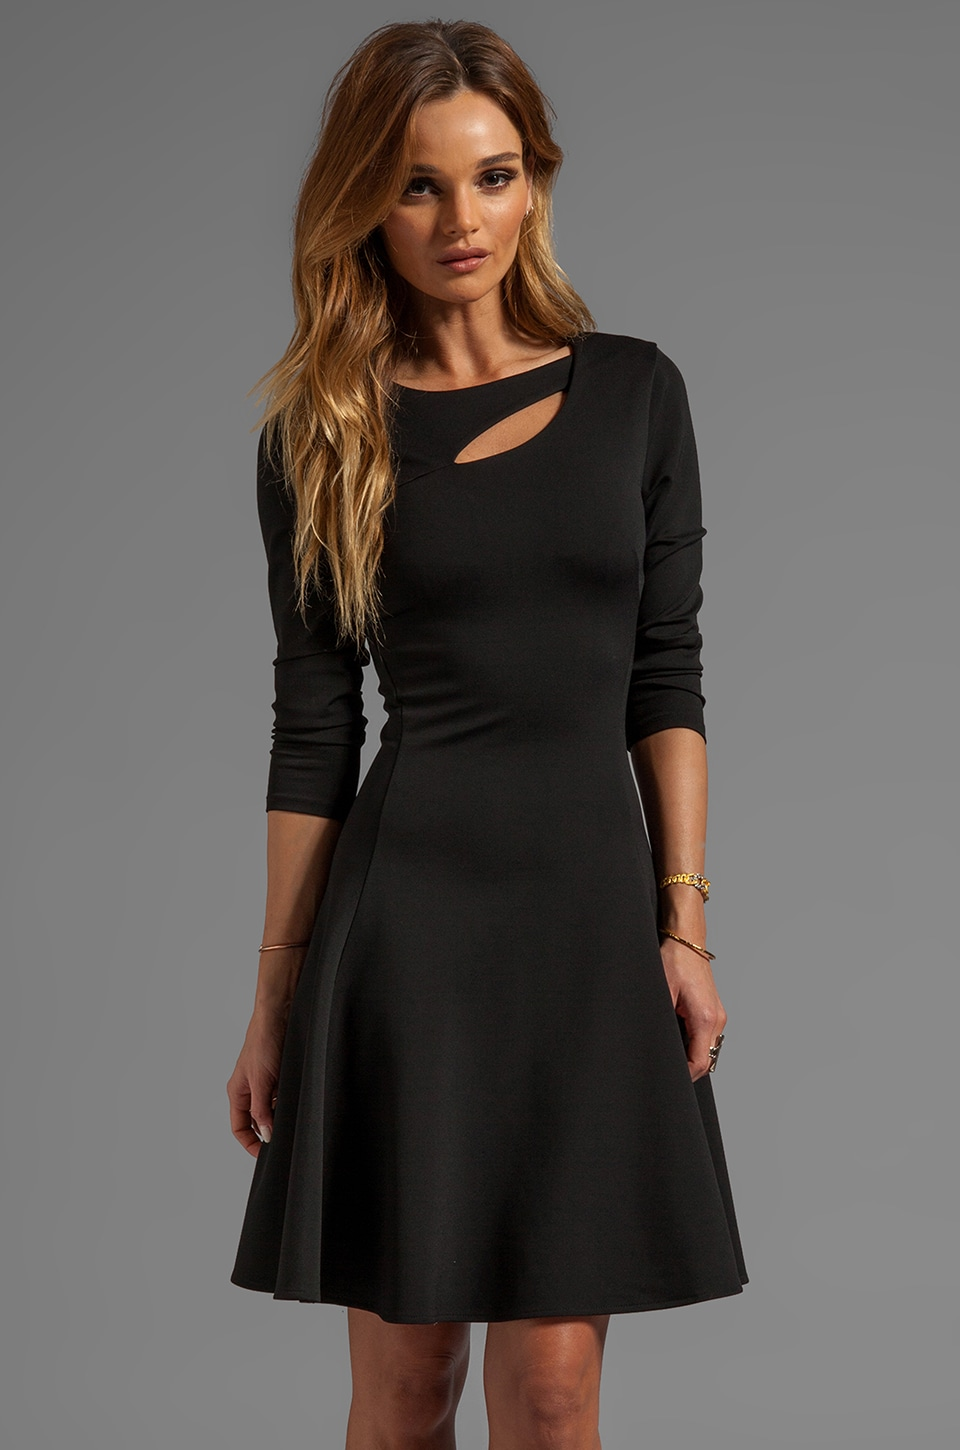 Halston Heritage 3/4 Sleeve Ponte Dress With Cut Out Detail in Black